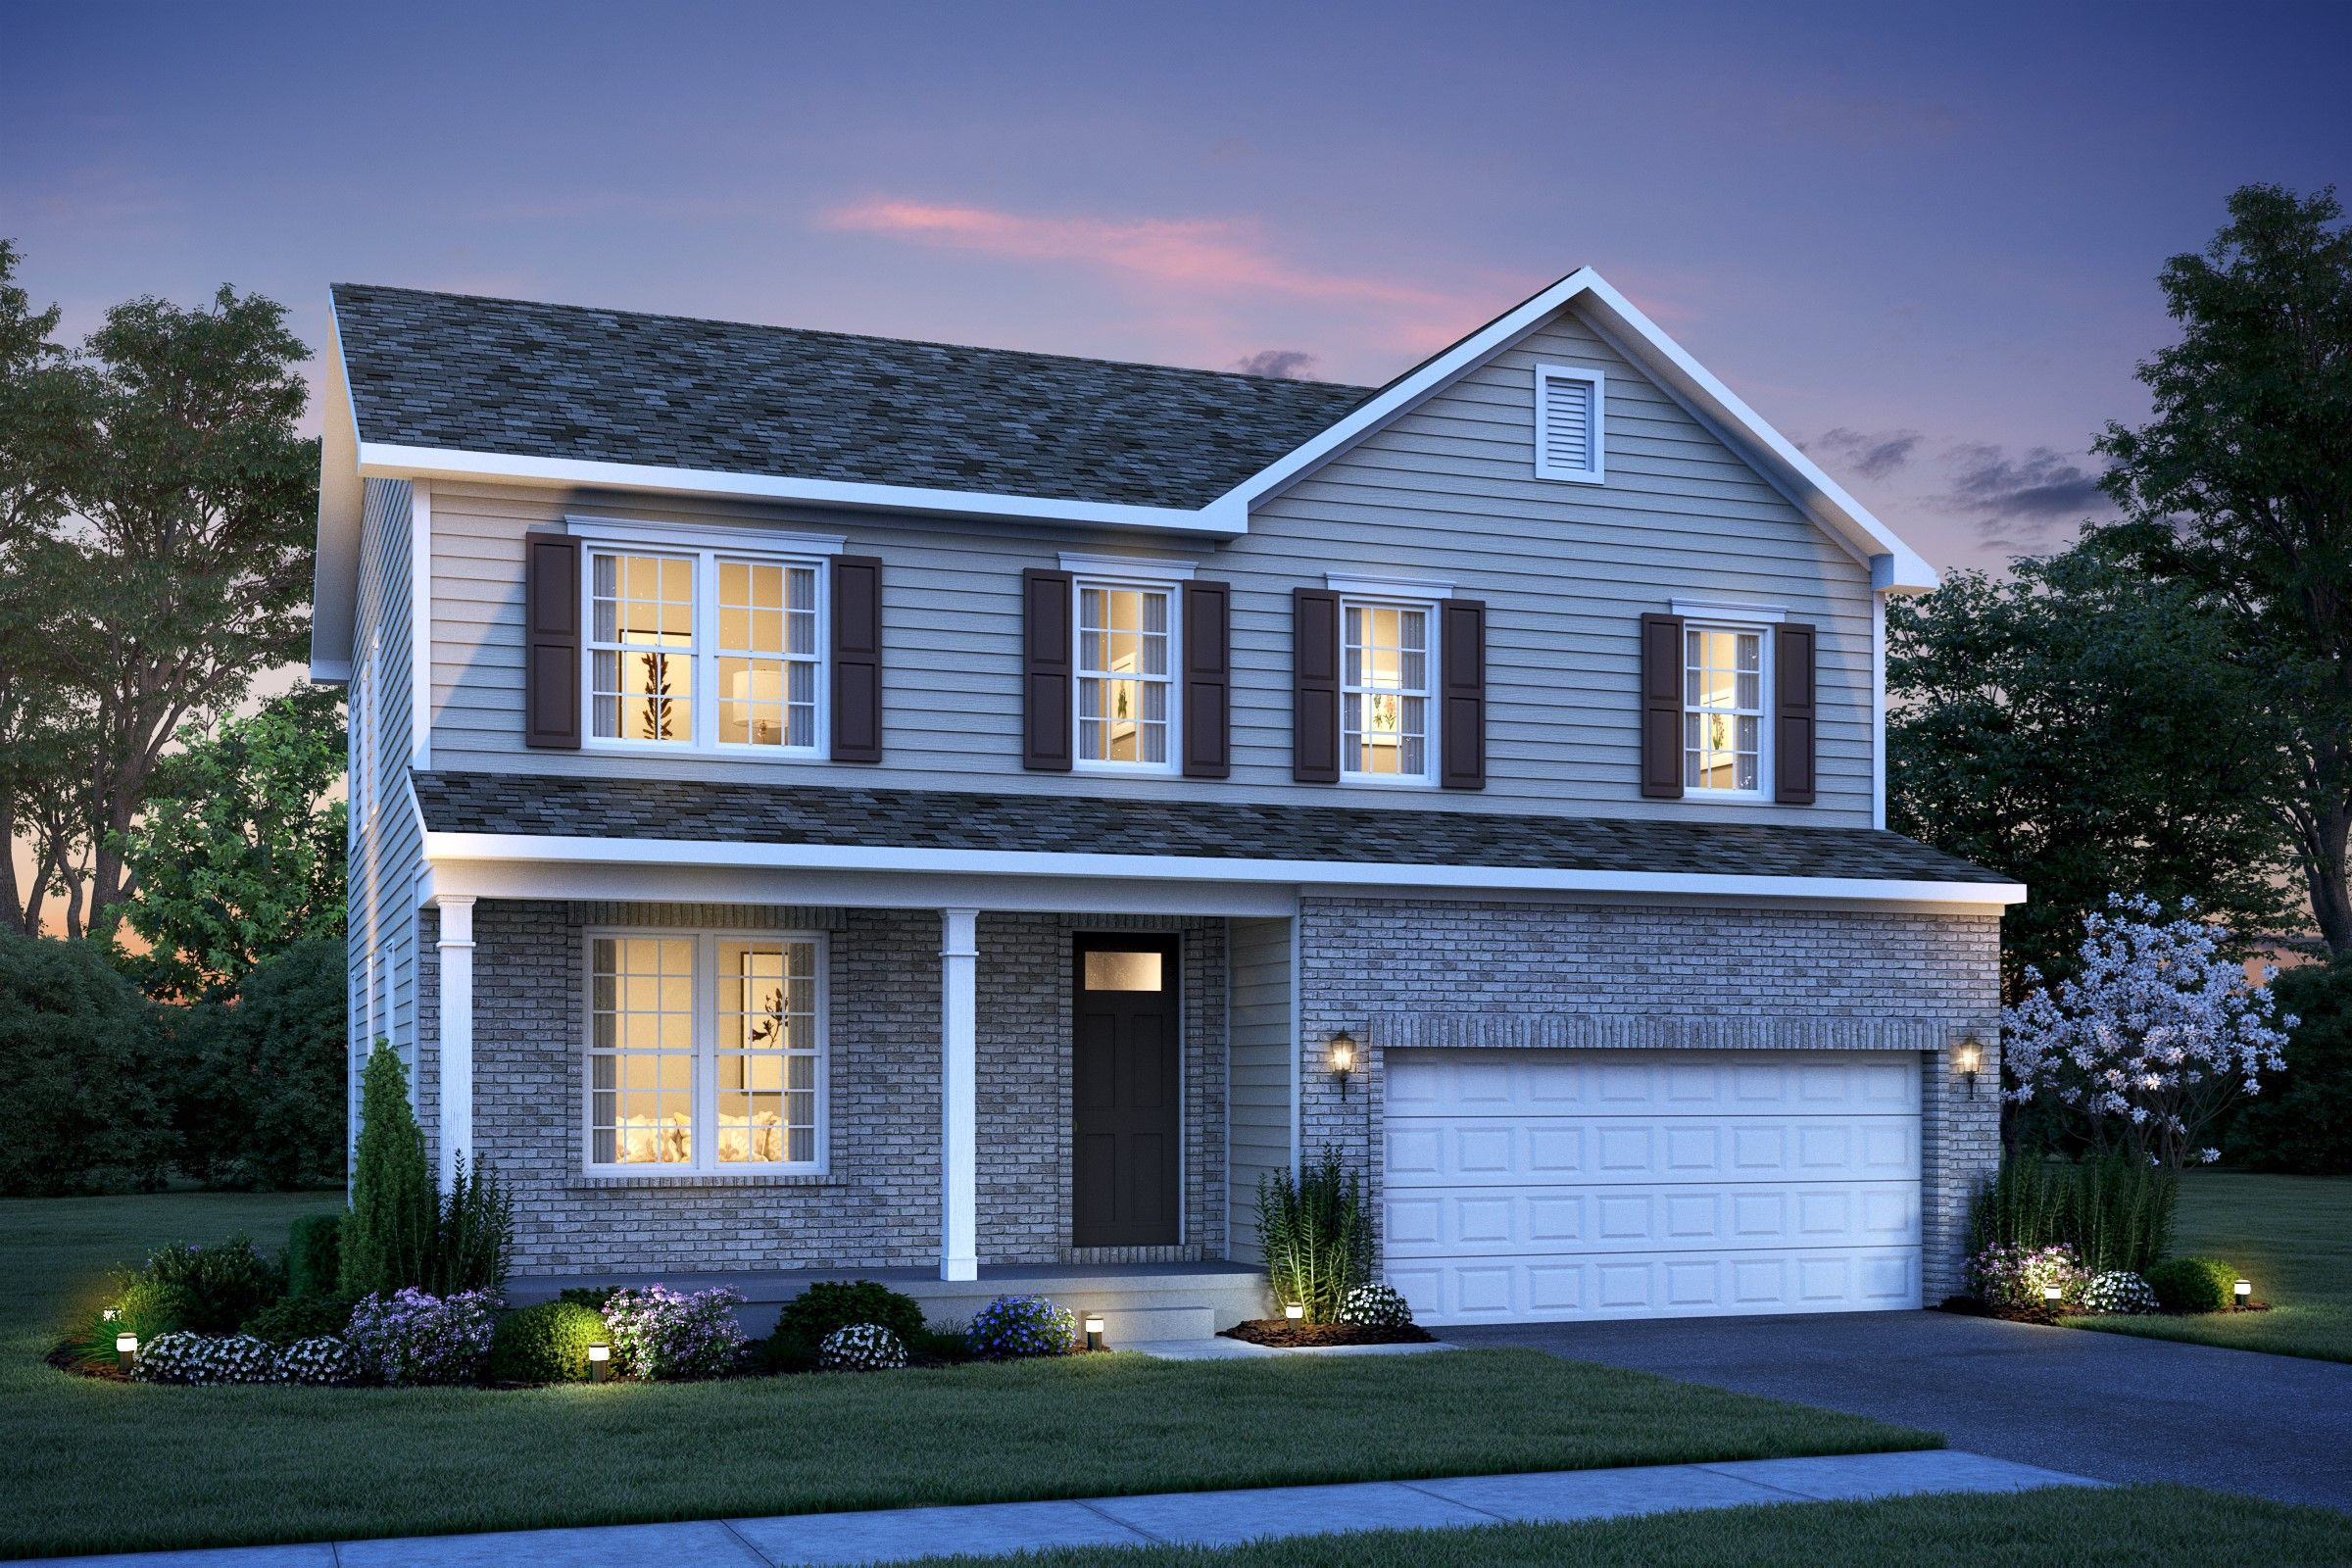 Single Family for Sale at Meadow Brook At Hillsborough - Hanover Passe Court Hillsborough, New Jersey 08844 United States